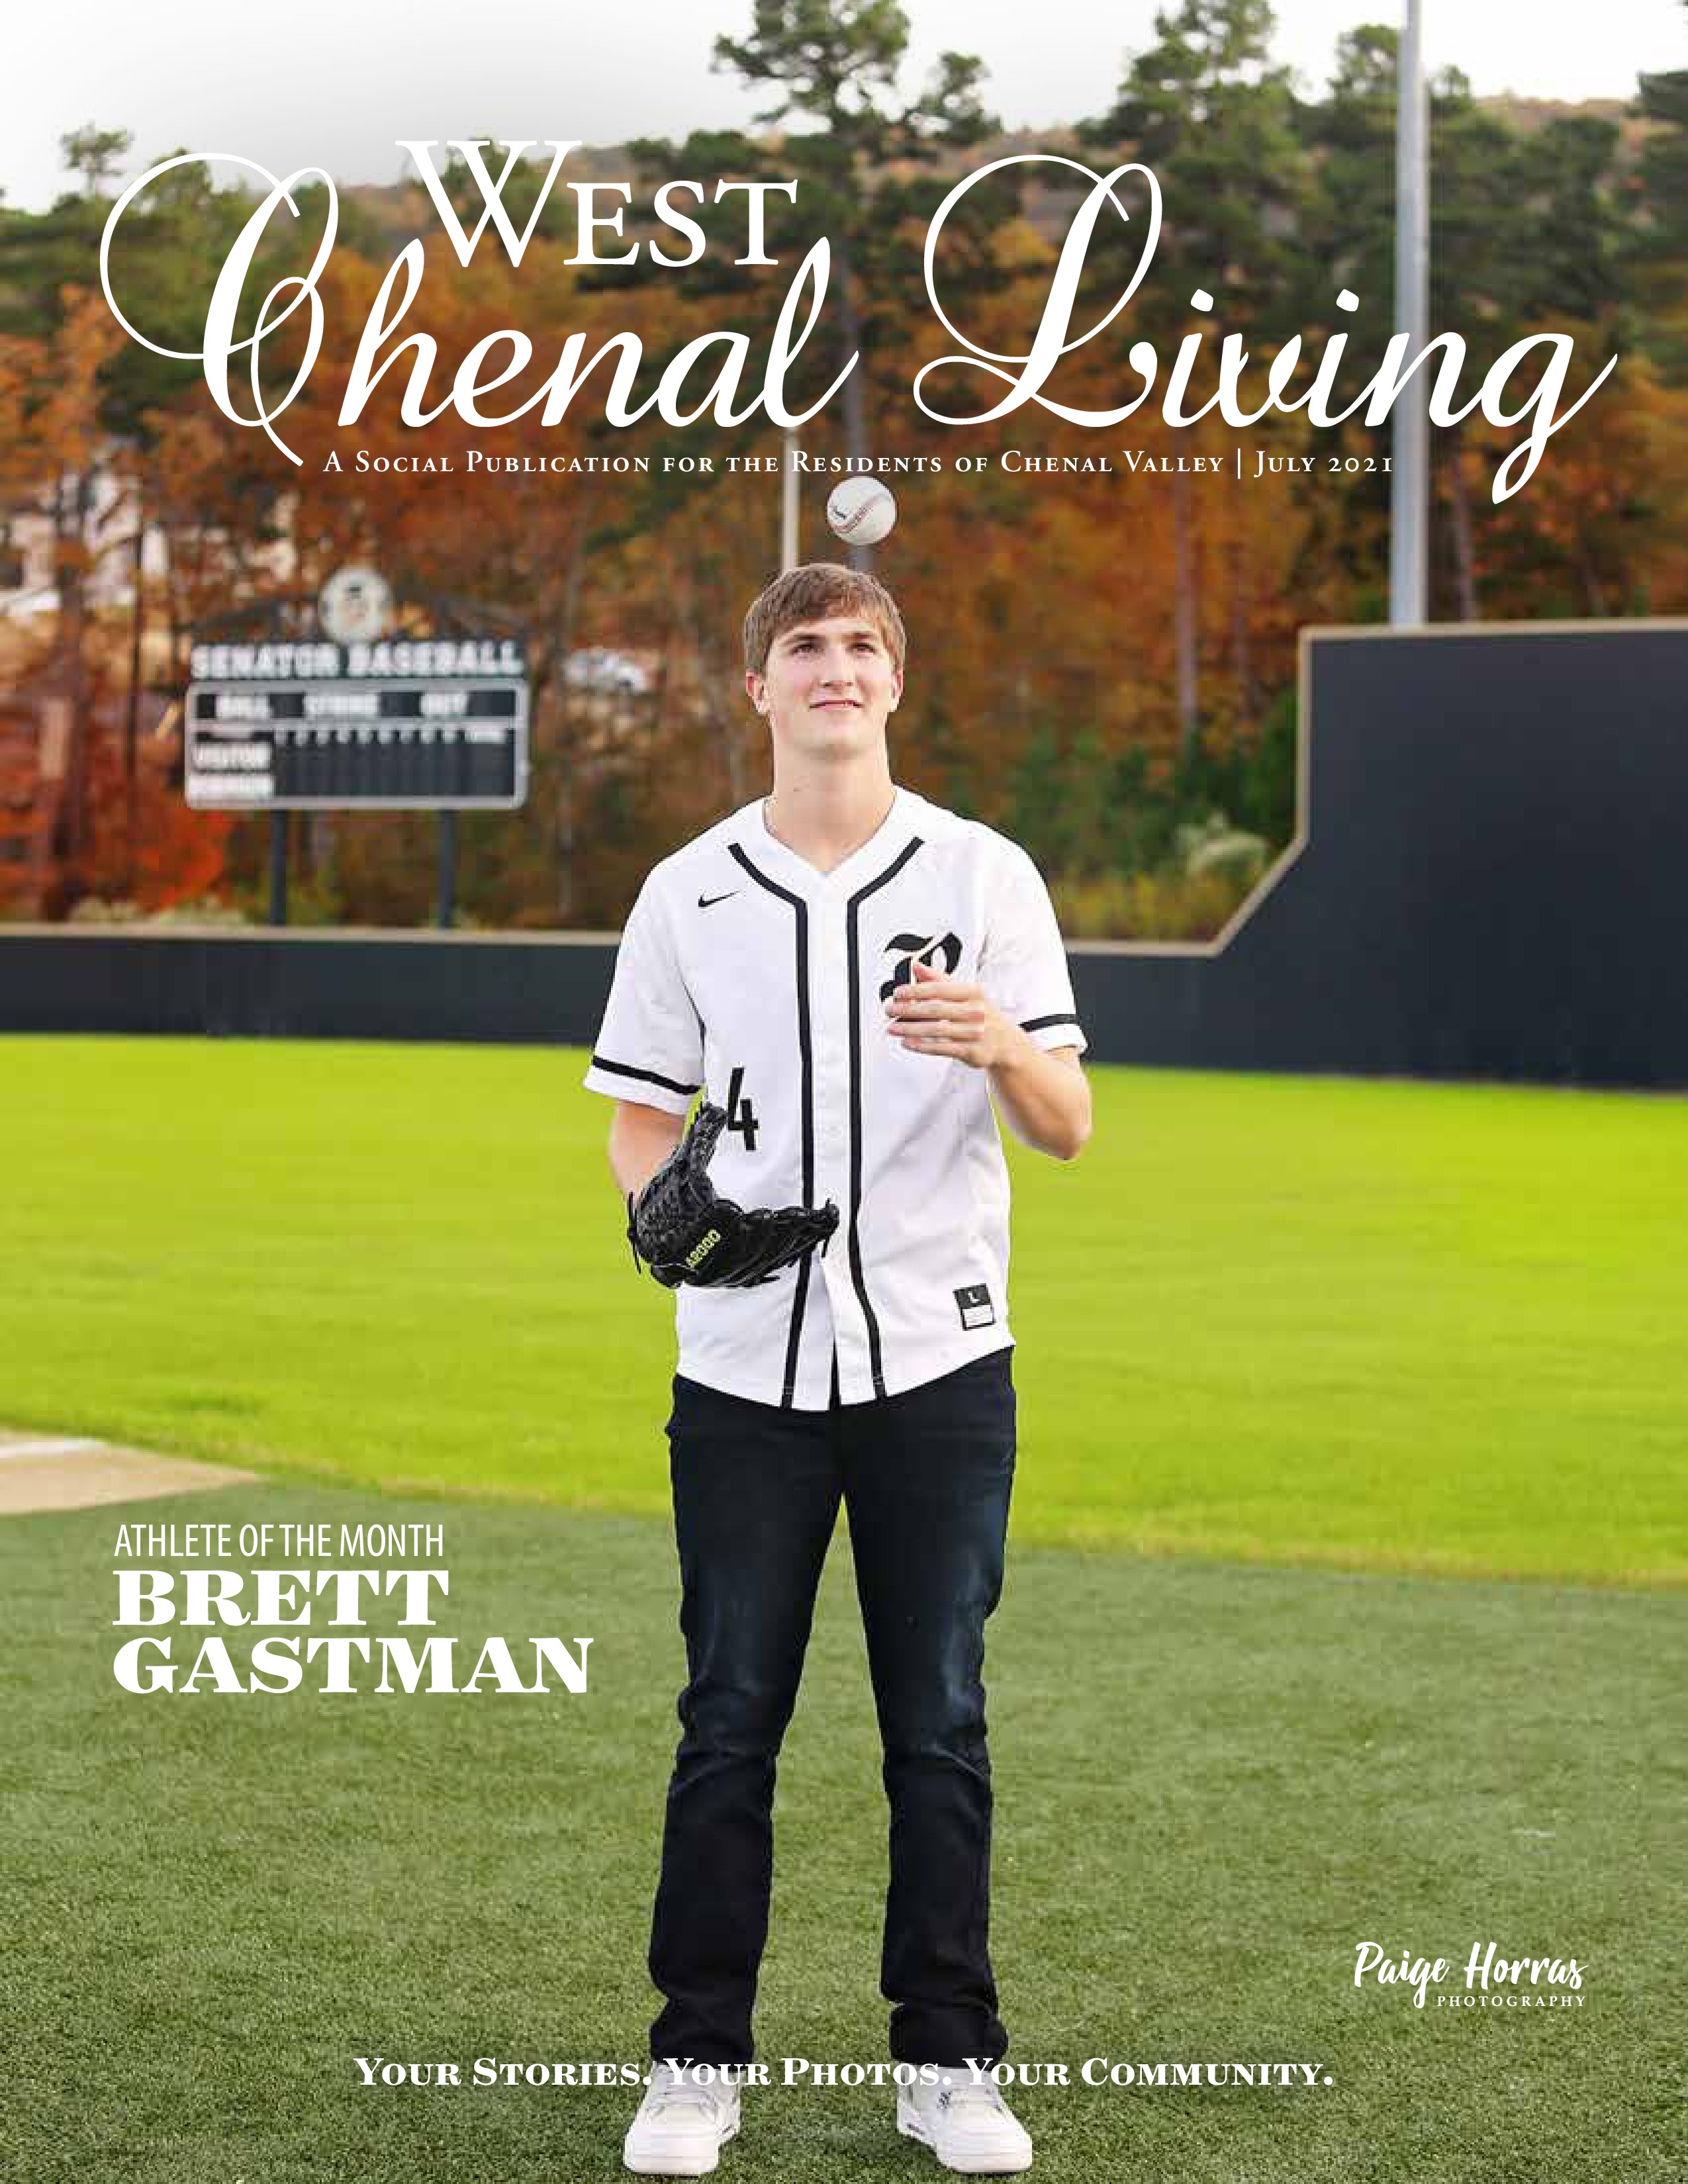 West Chenal Living 2021-07-01